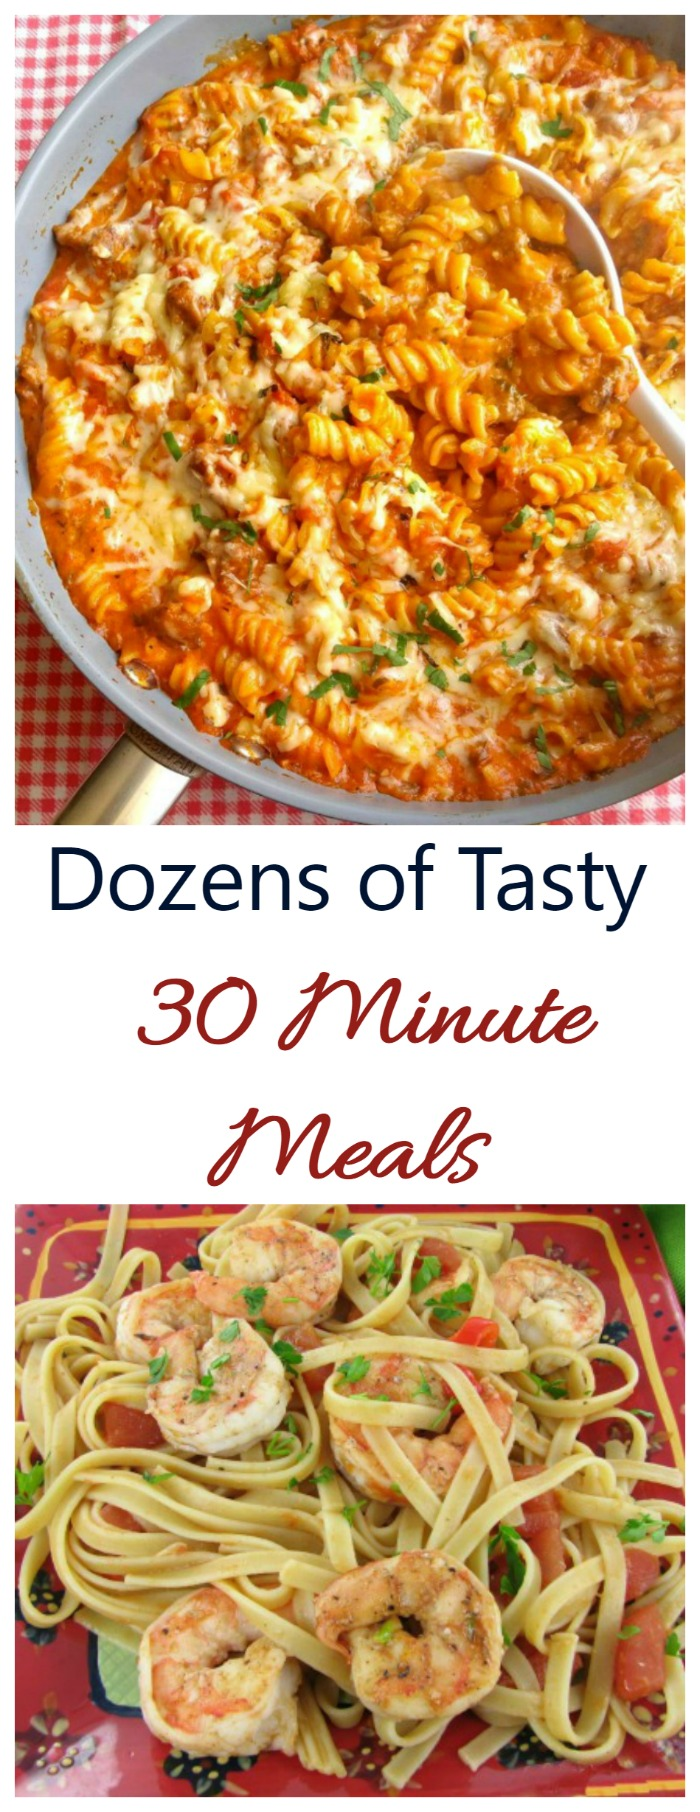 30 minute meals quick recipes ready in a half hour or less browse my collection of dozens 30 minute meals featuring ideas for breakfast lunch and dinner forumfinder Gallery